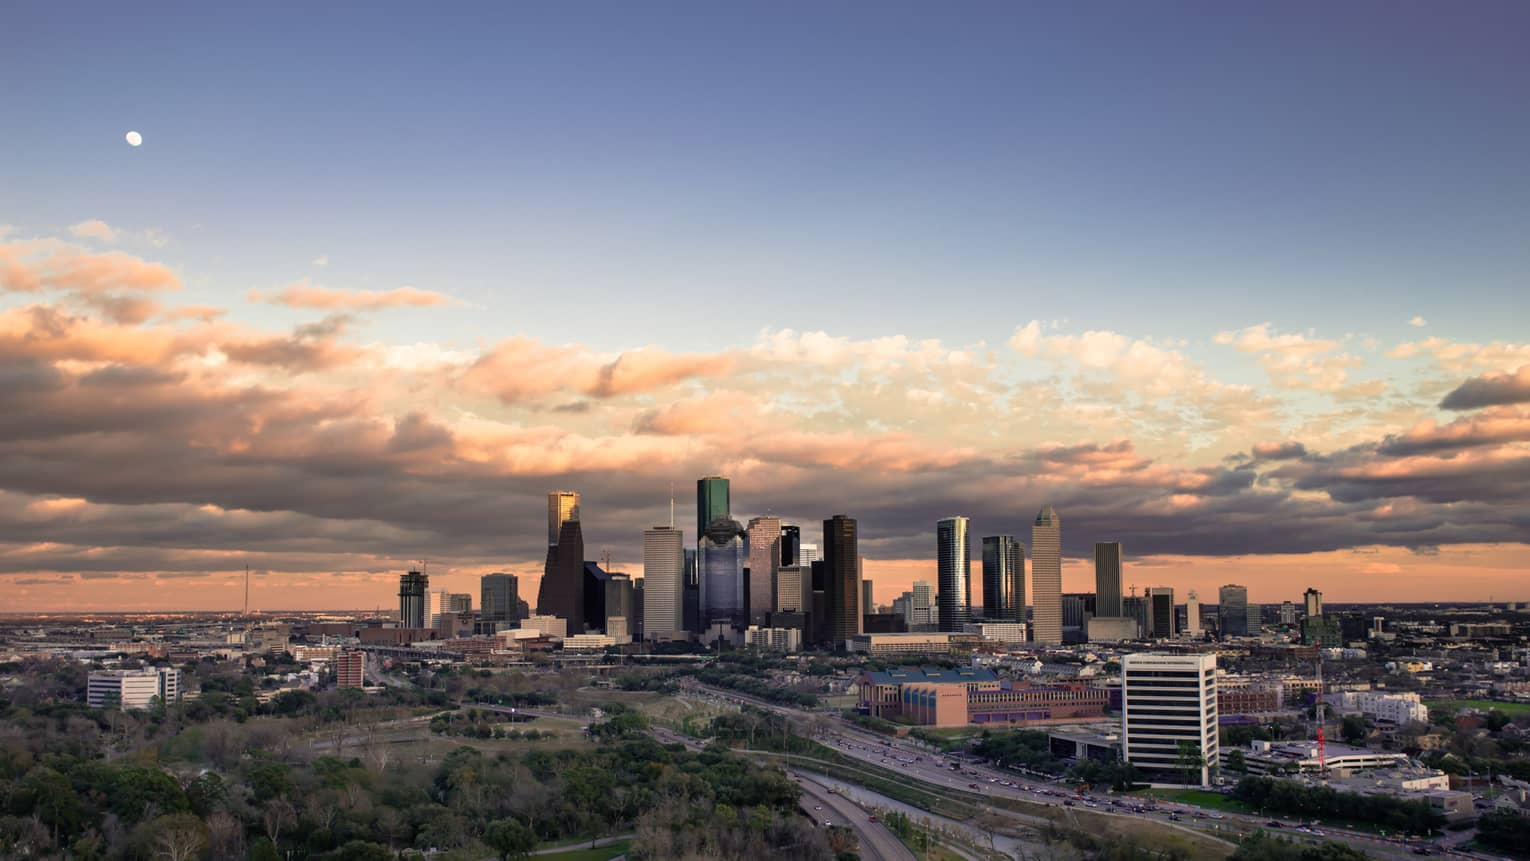 View of Houston city skyline at sunrise